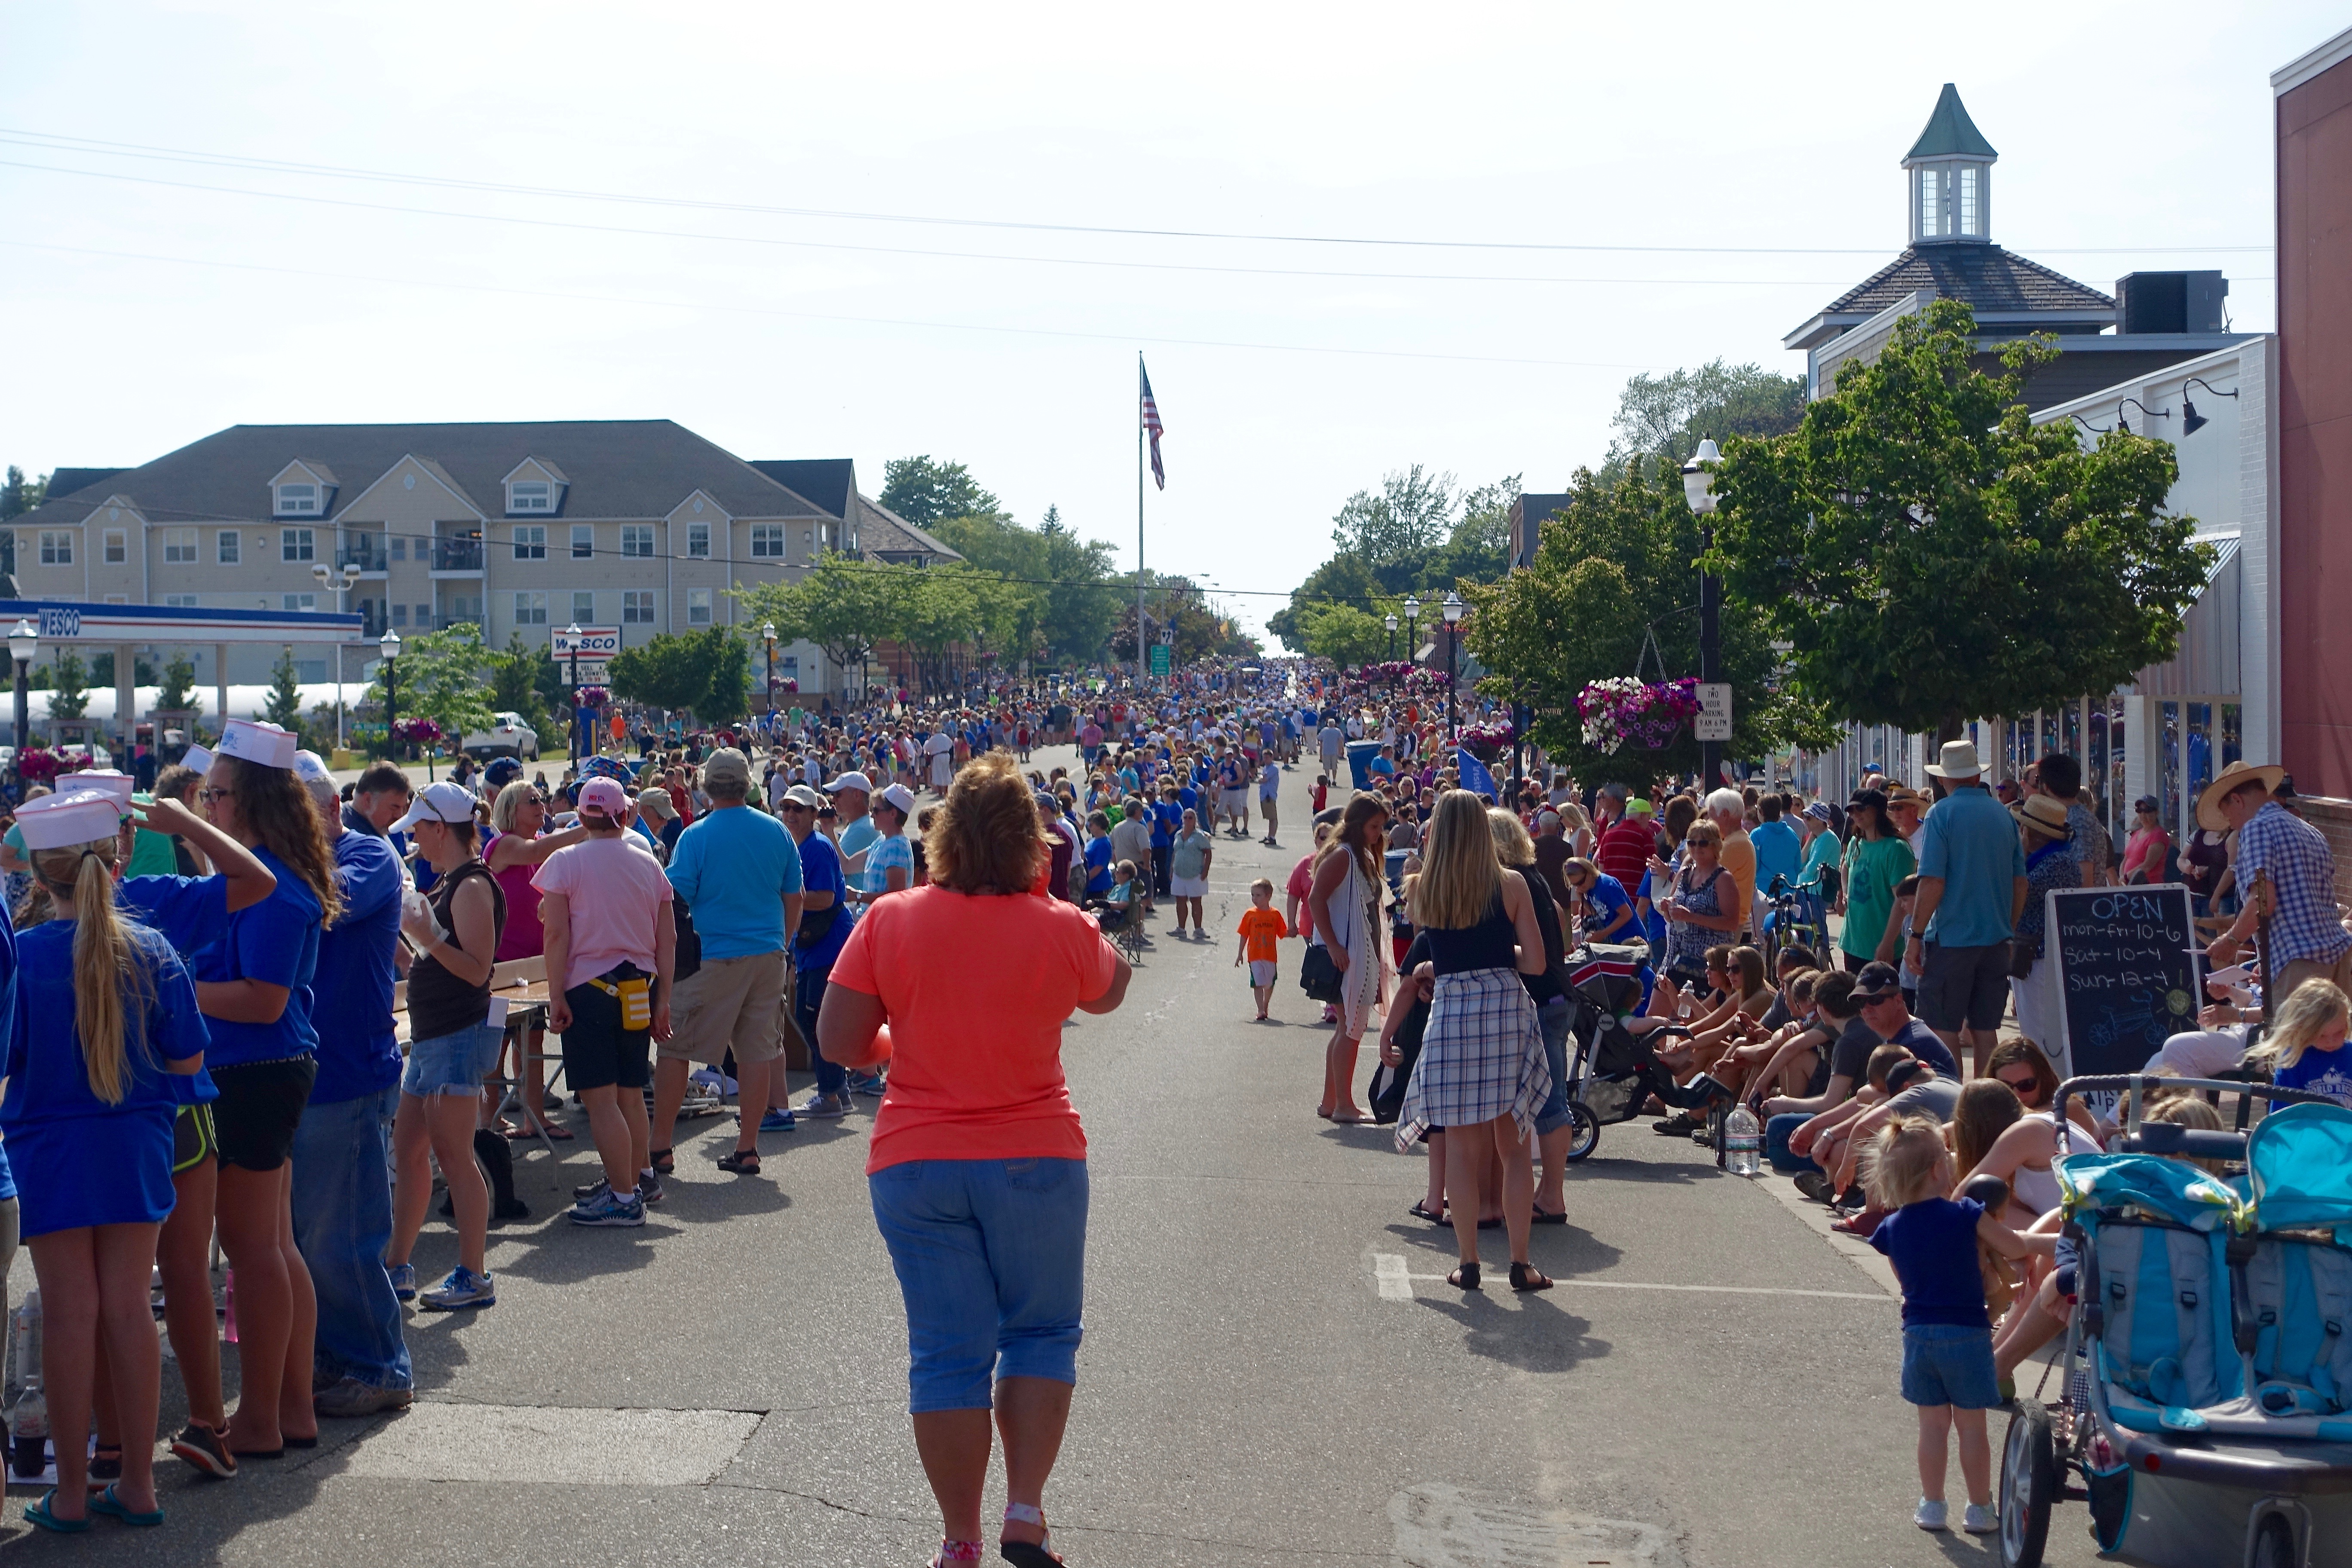 Streets lined at Ludington's World's Largest Sundae Attempt